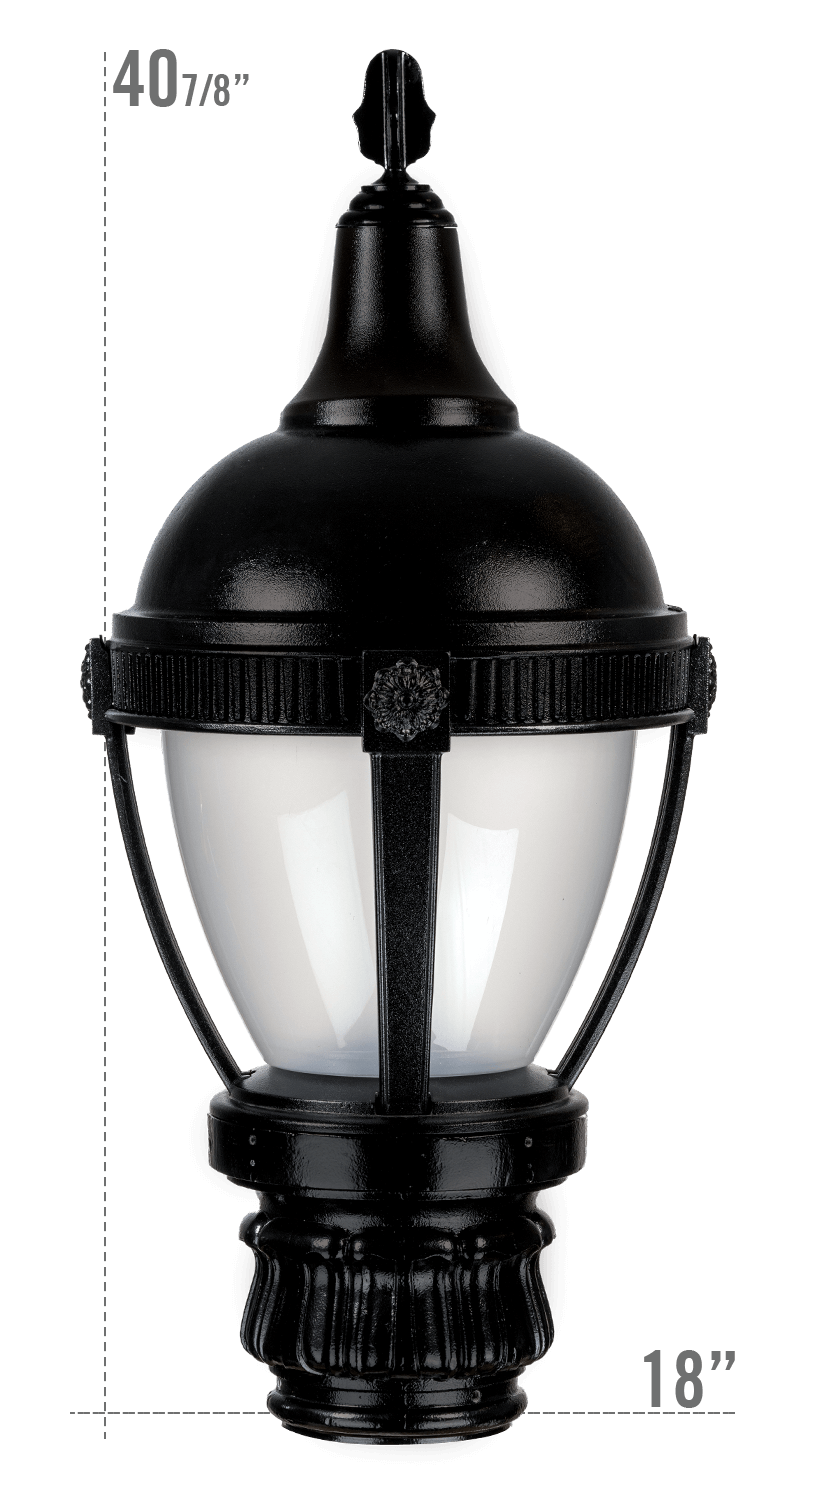 THE ROUND ROOF AUGUSTA LED LUMINAIRE WITH MERIDEN FITTER FROSTED GLOBE